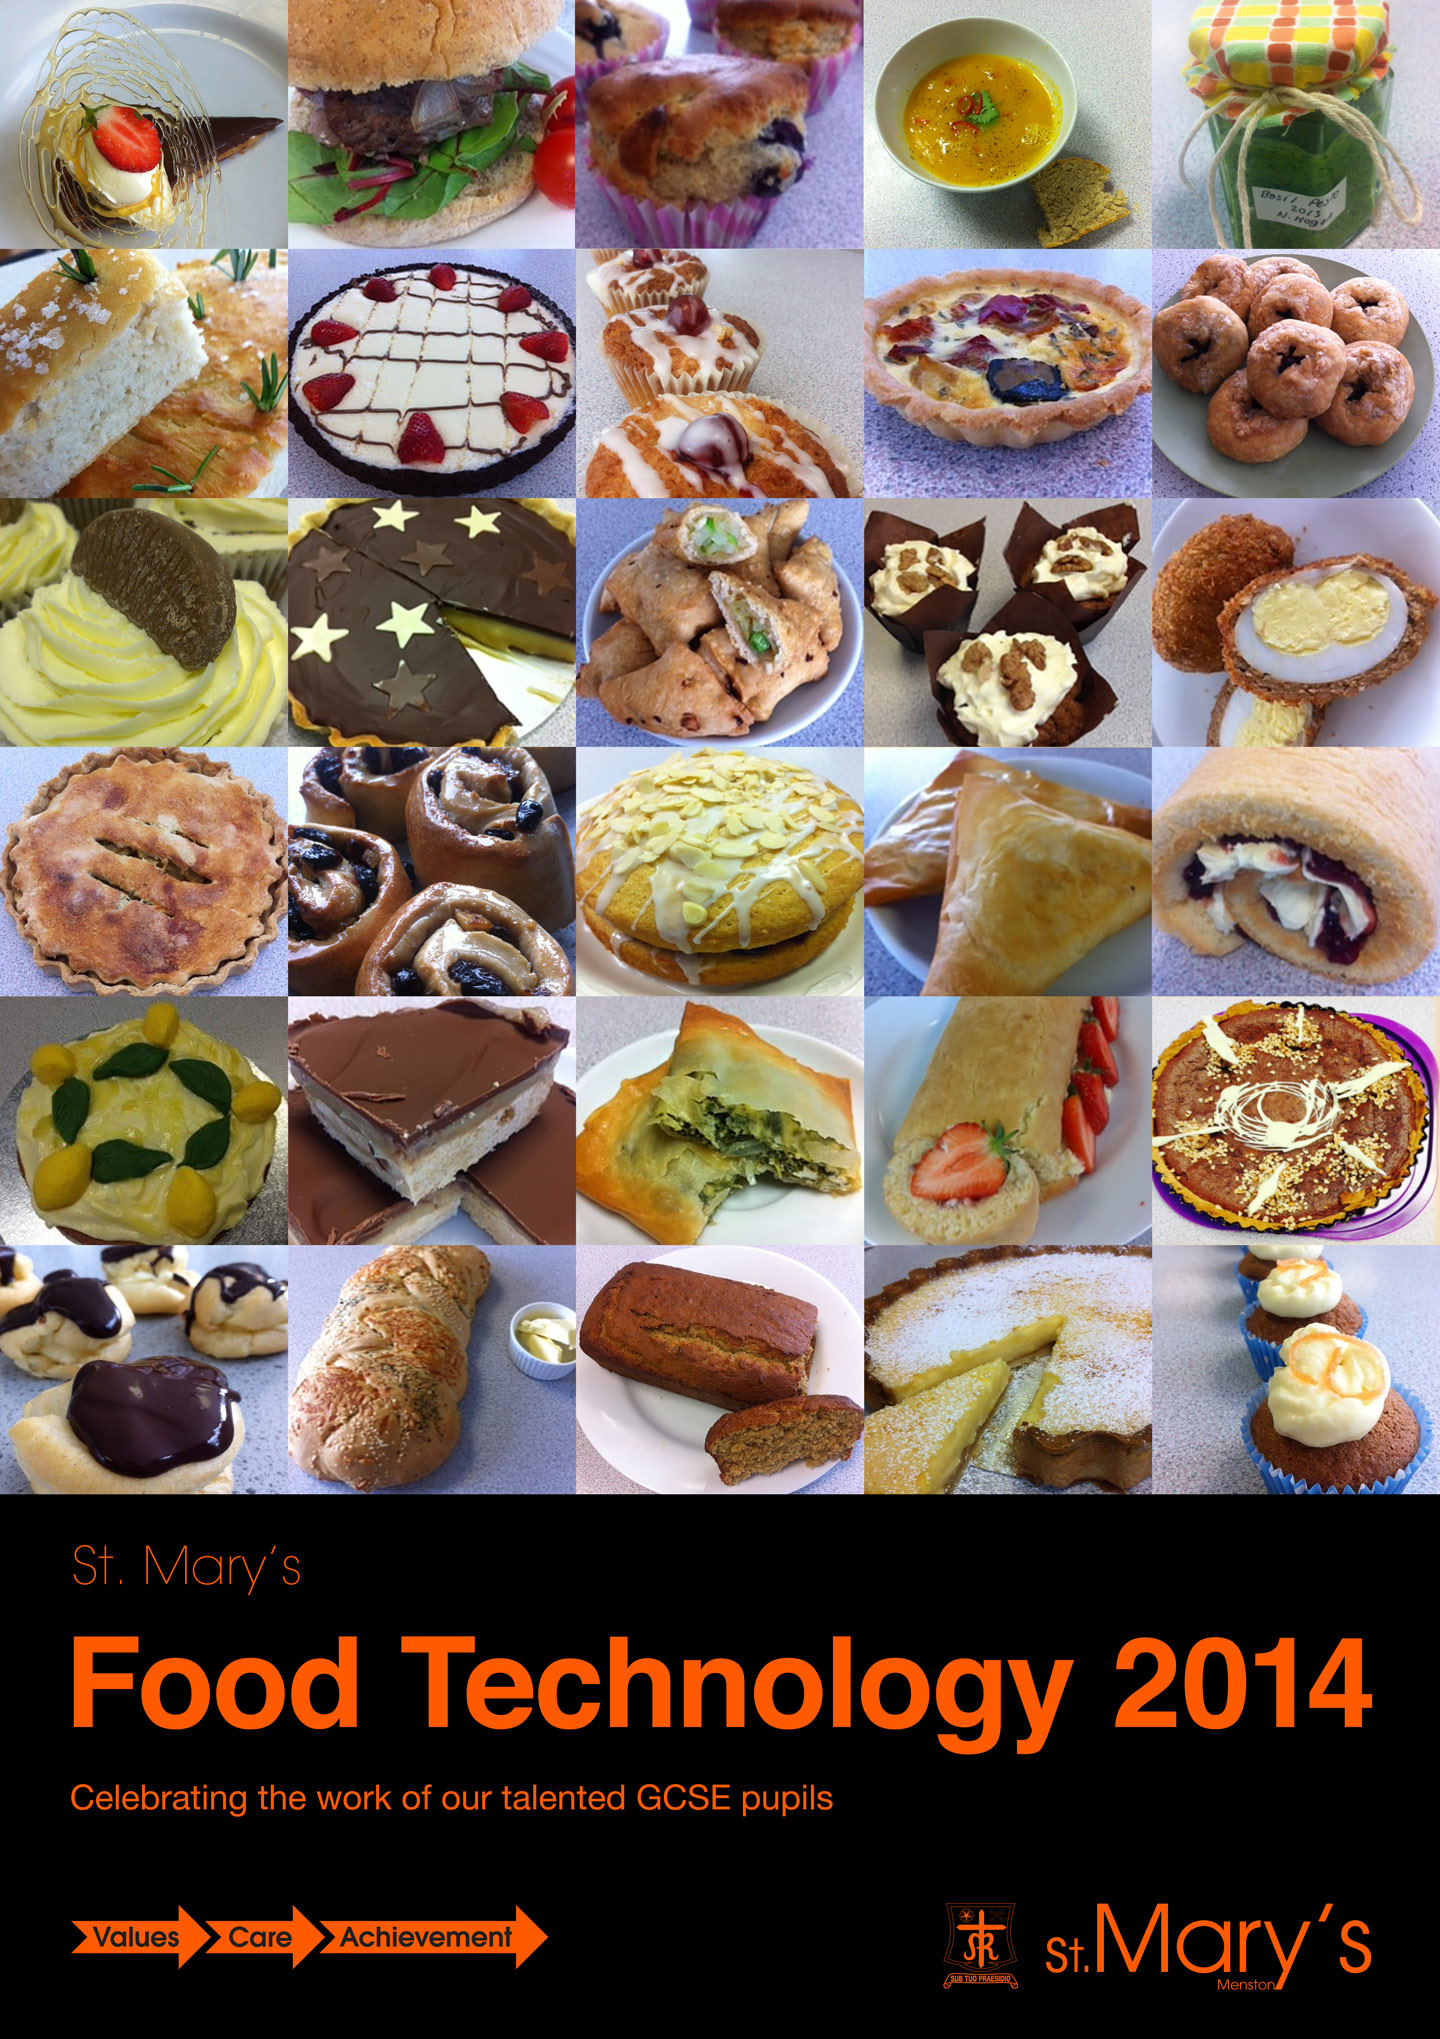 Food-Technology-2014-poster-(1440px).jpg